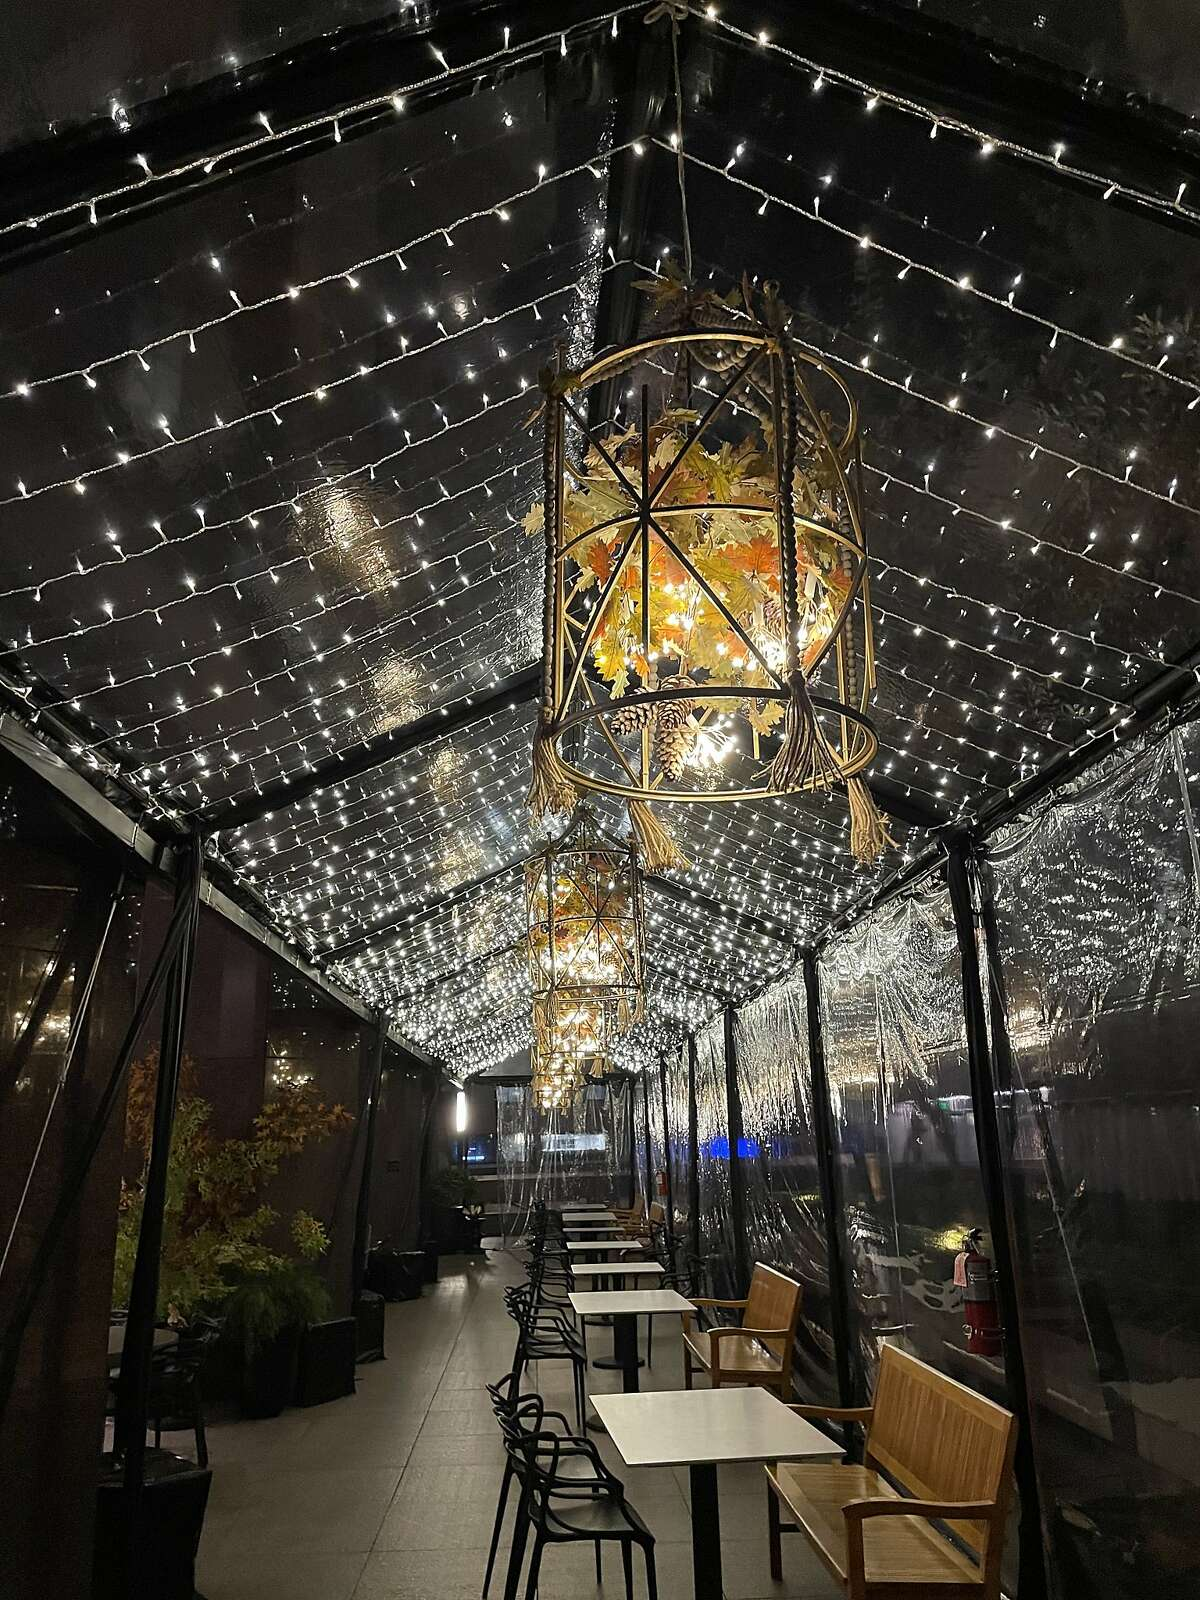 The Vault Garden has installed a giant clear tent and lights to get the outdoor restaurant into a festive mood. The decor will fully transform into a winter wonderland theme after Thanksgiving.